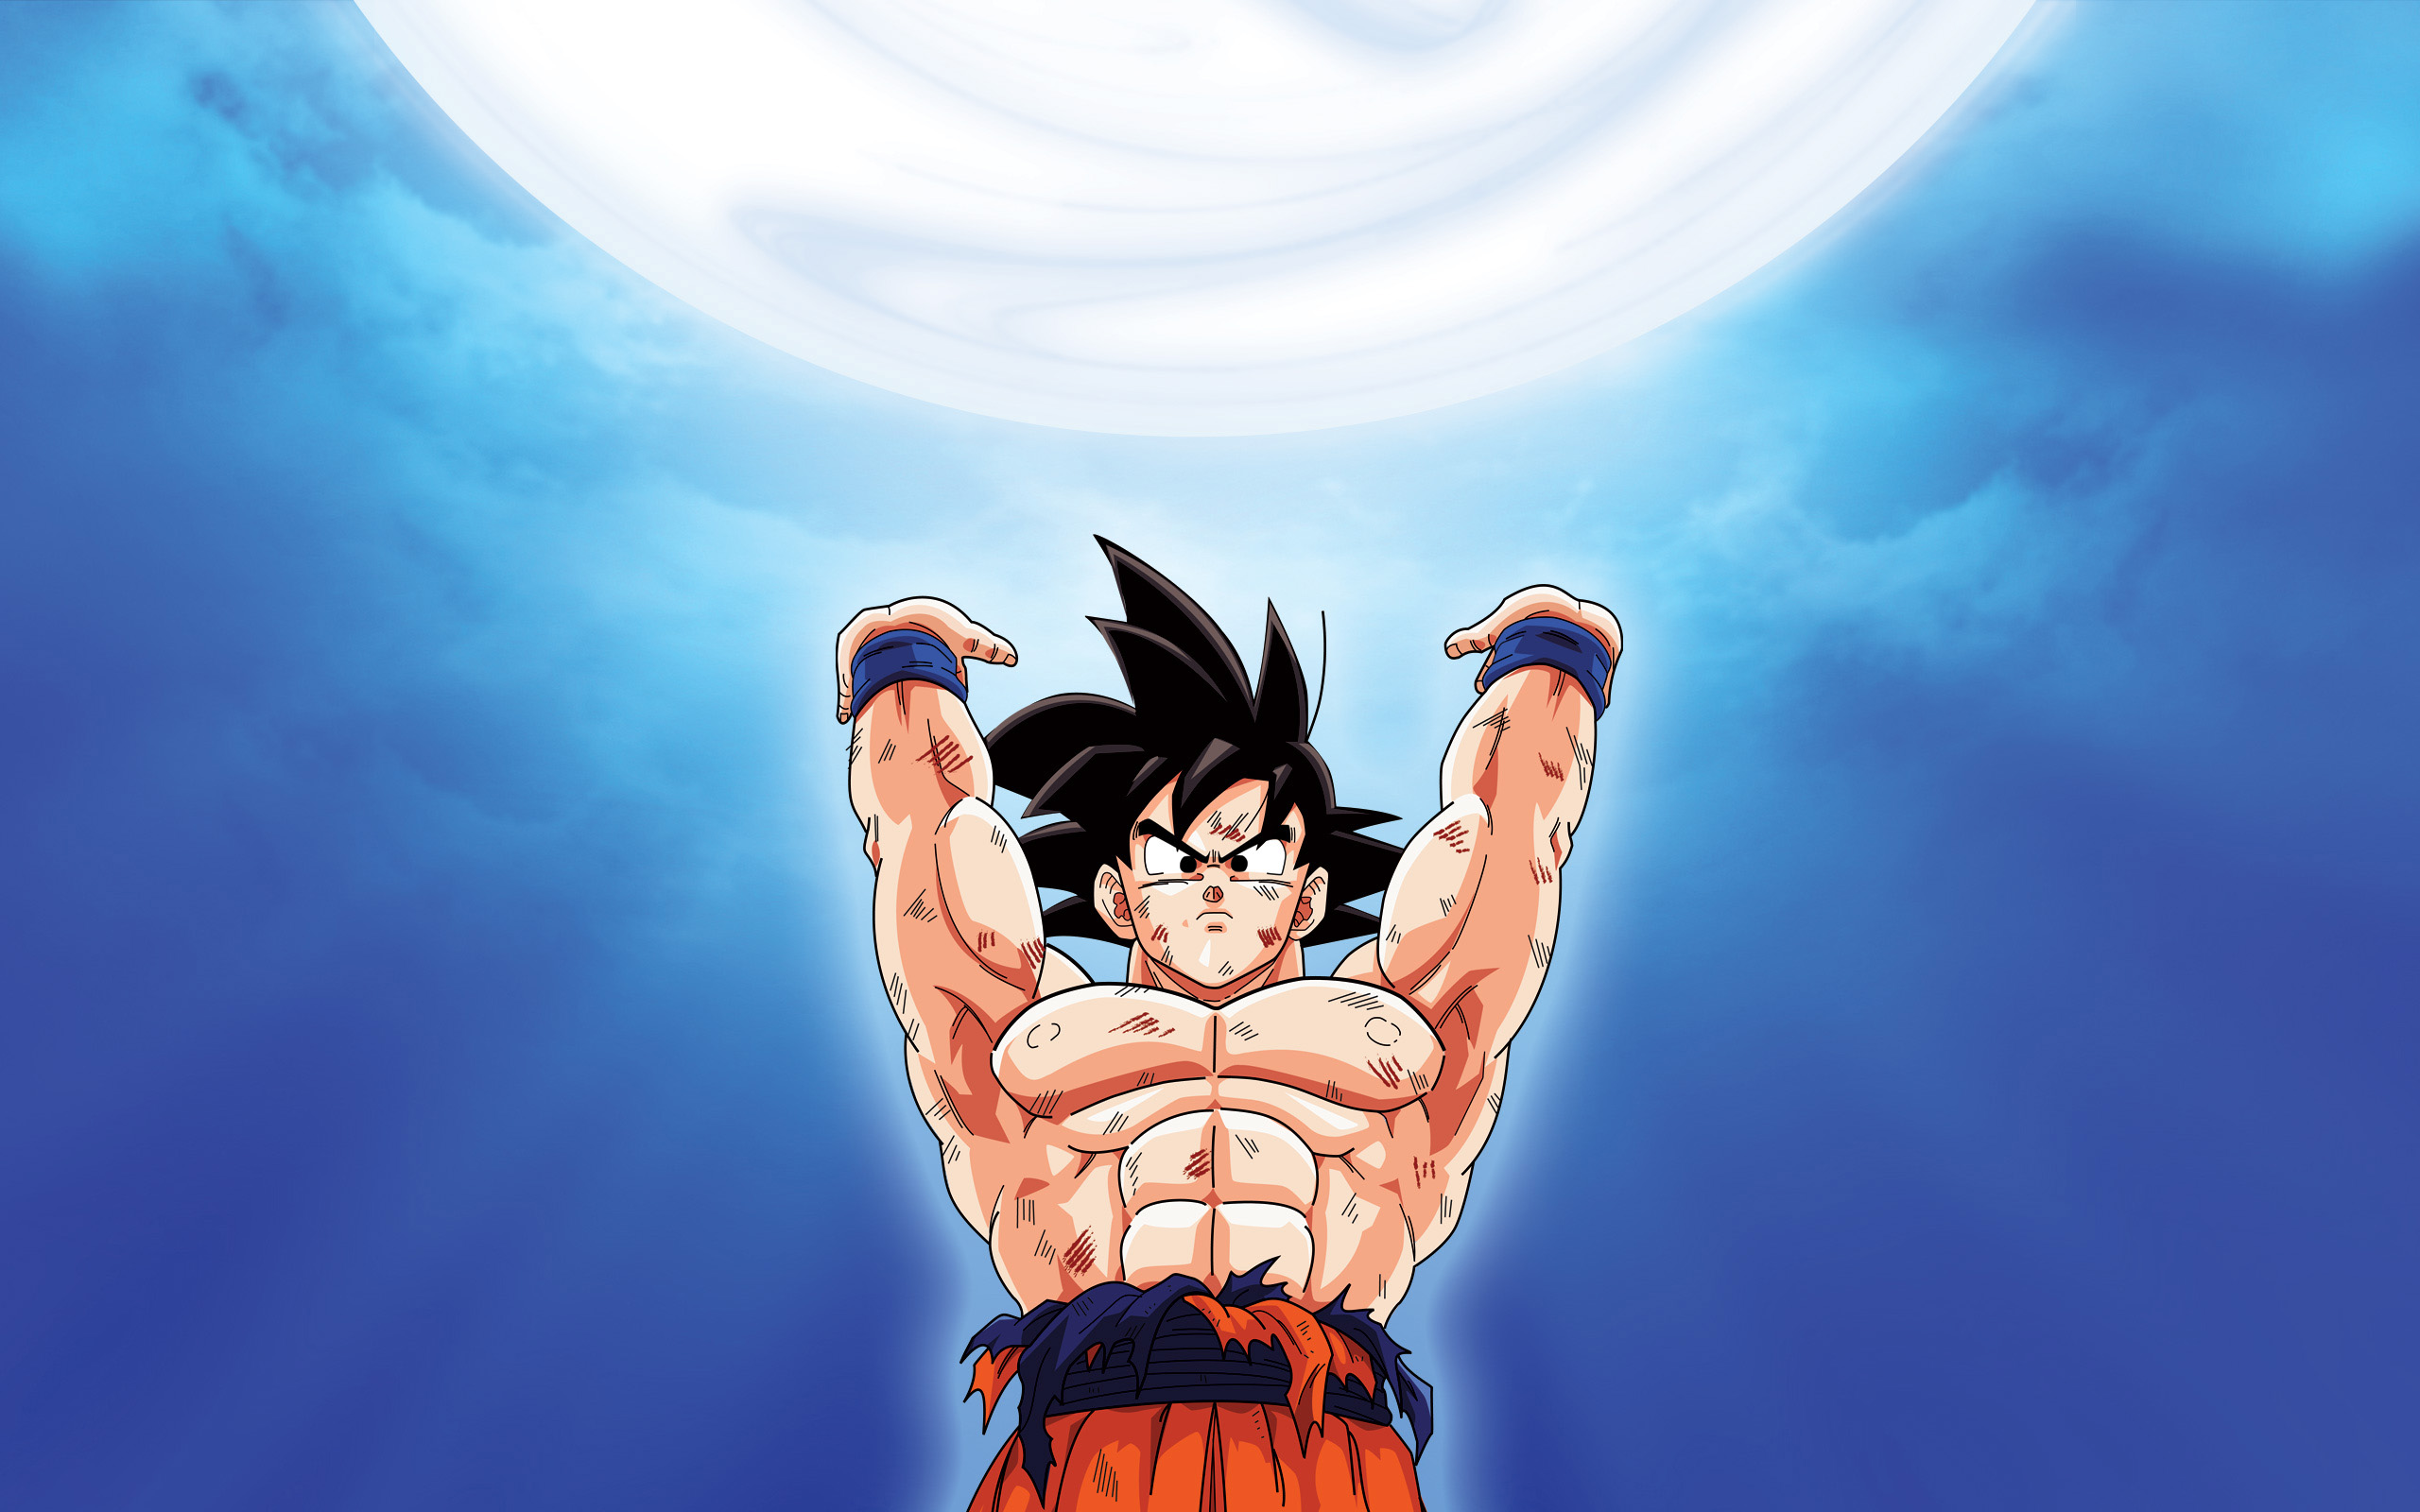 Fondos de pantalla Anime The Spirit Bomb Goku Dragon Ball